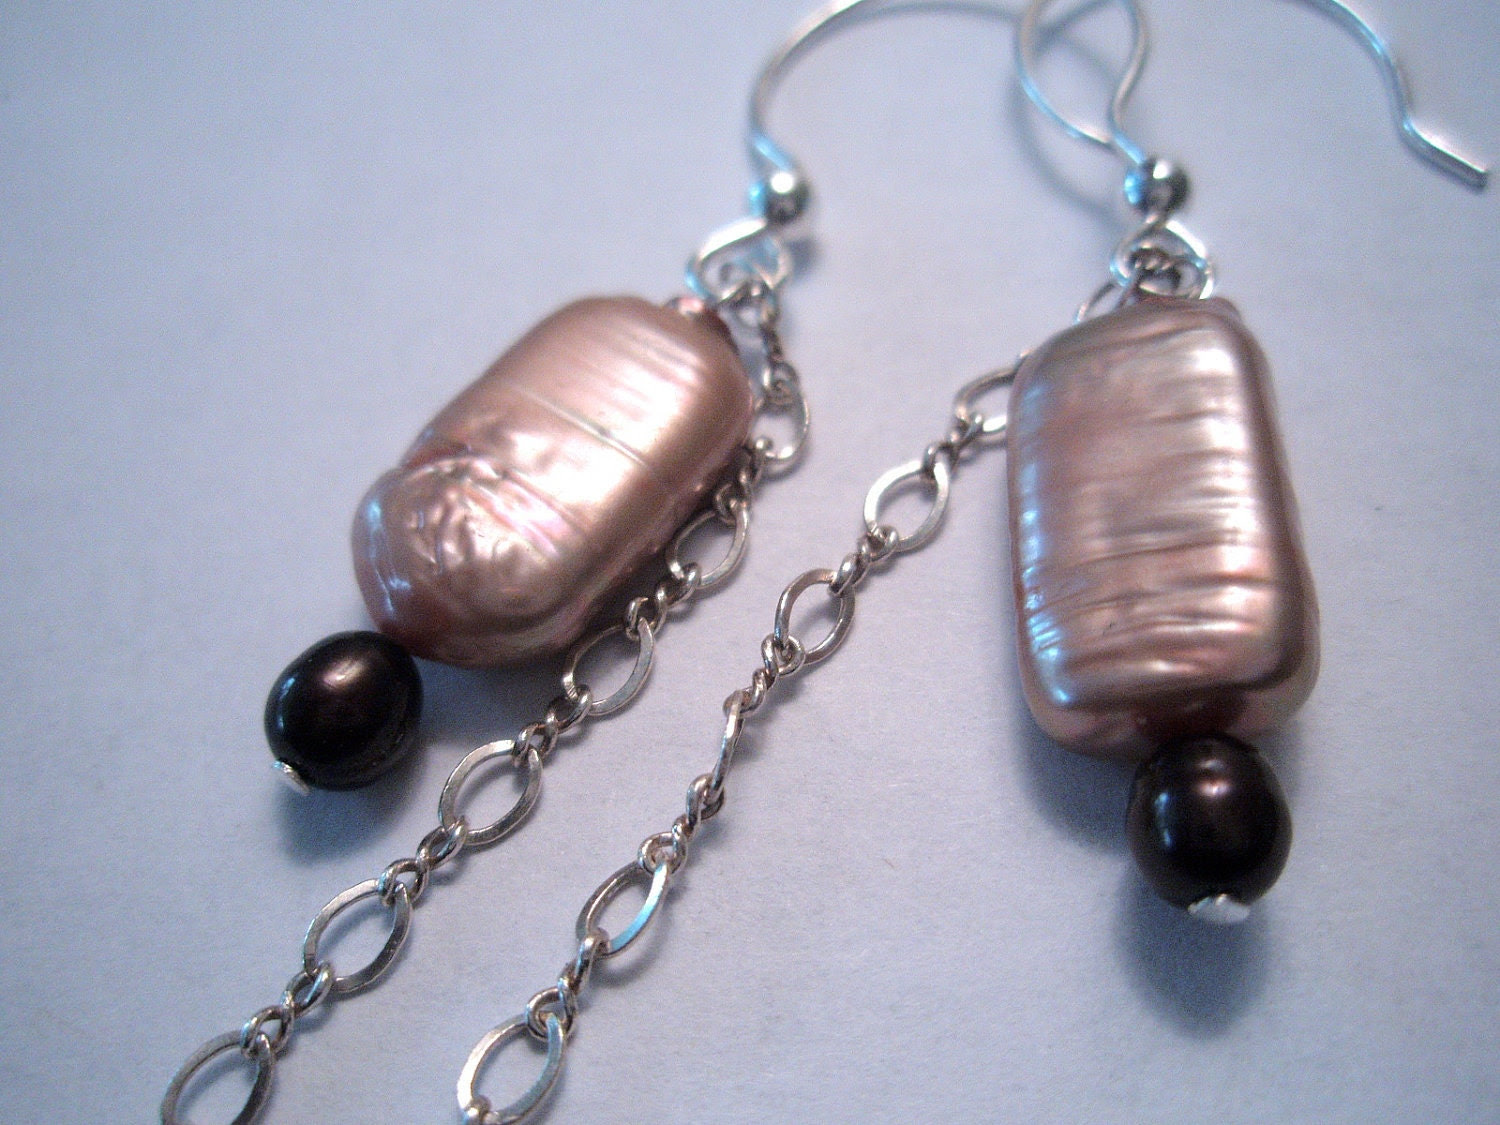 Pearl-y Victorious - Pearl and Chain Earrings